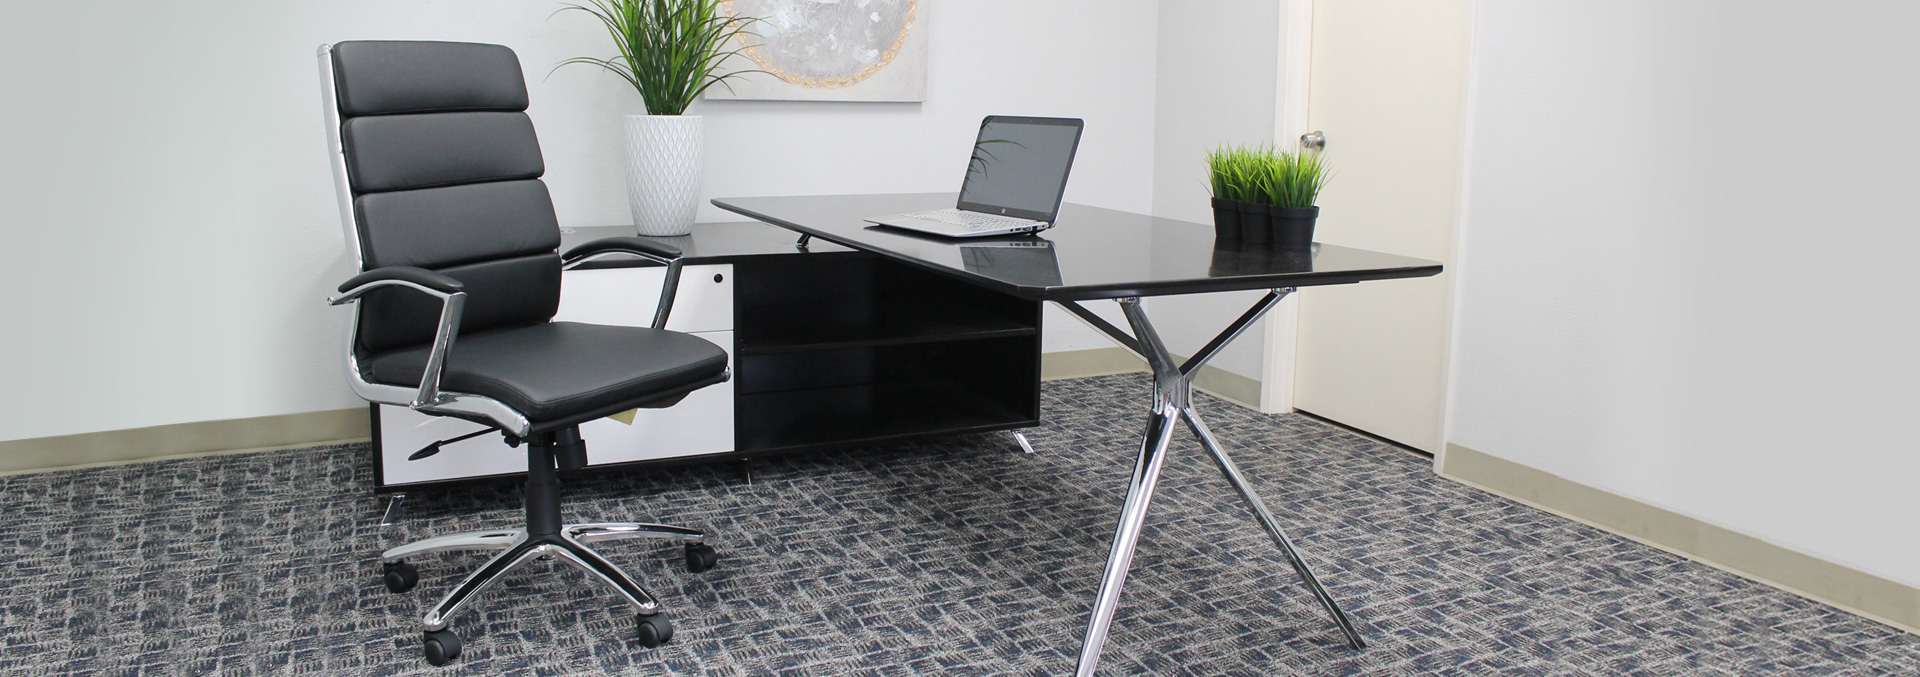 office desk design open plan about us contact become dealer bosschair norstar company